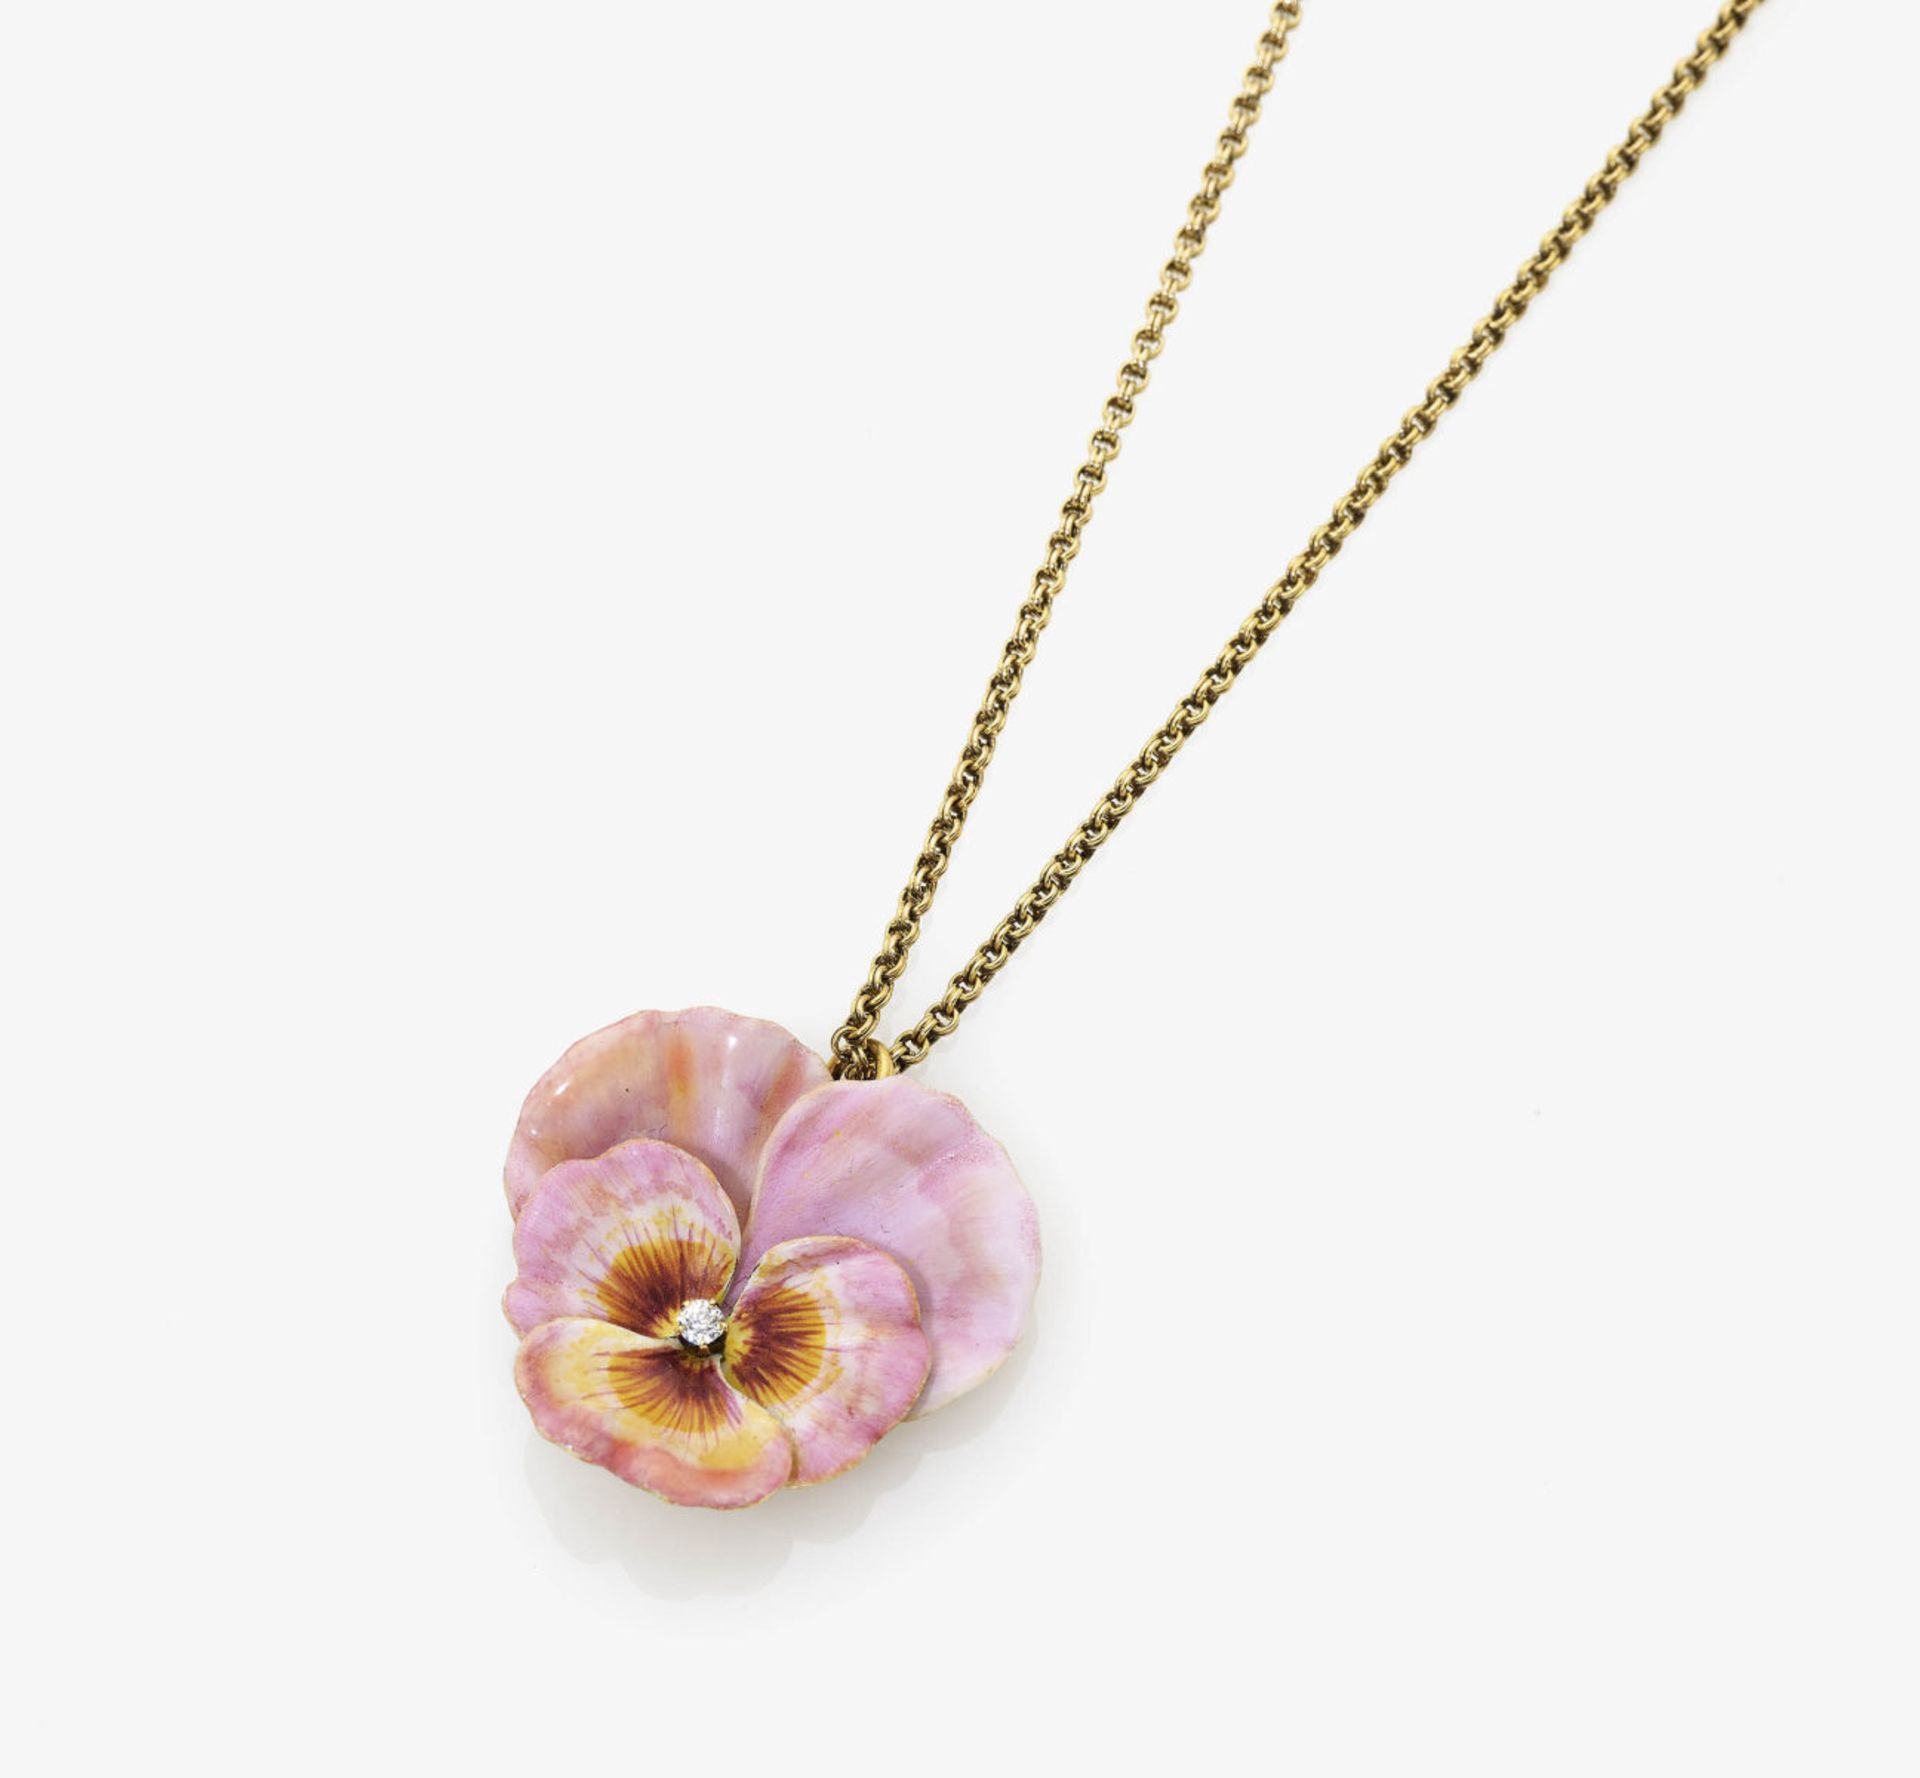 Los 1004 - An Enamel and Diamond 'Shorty' Pansy Necklace